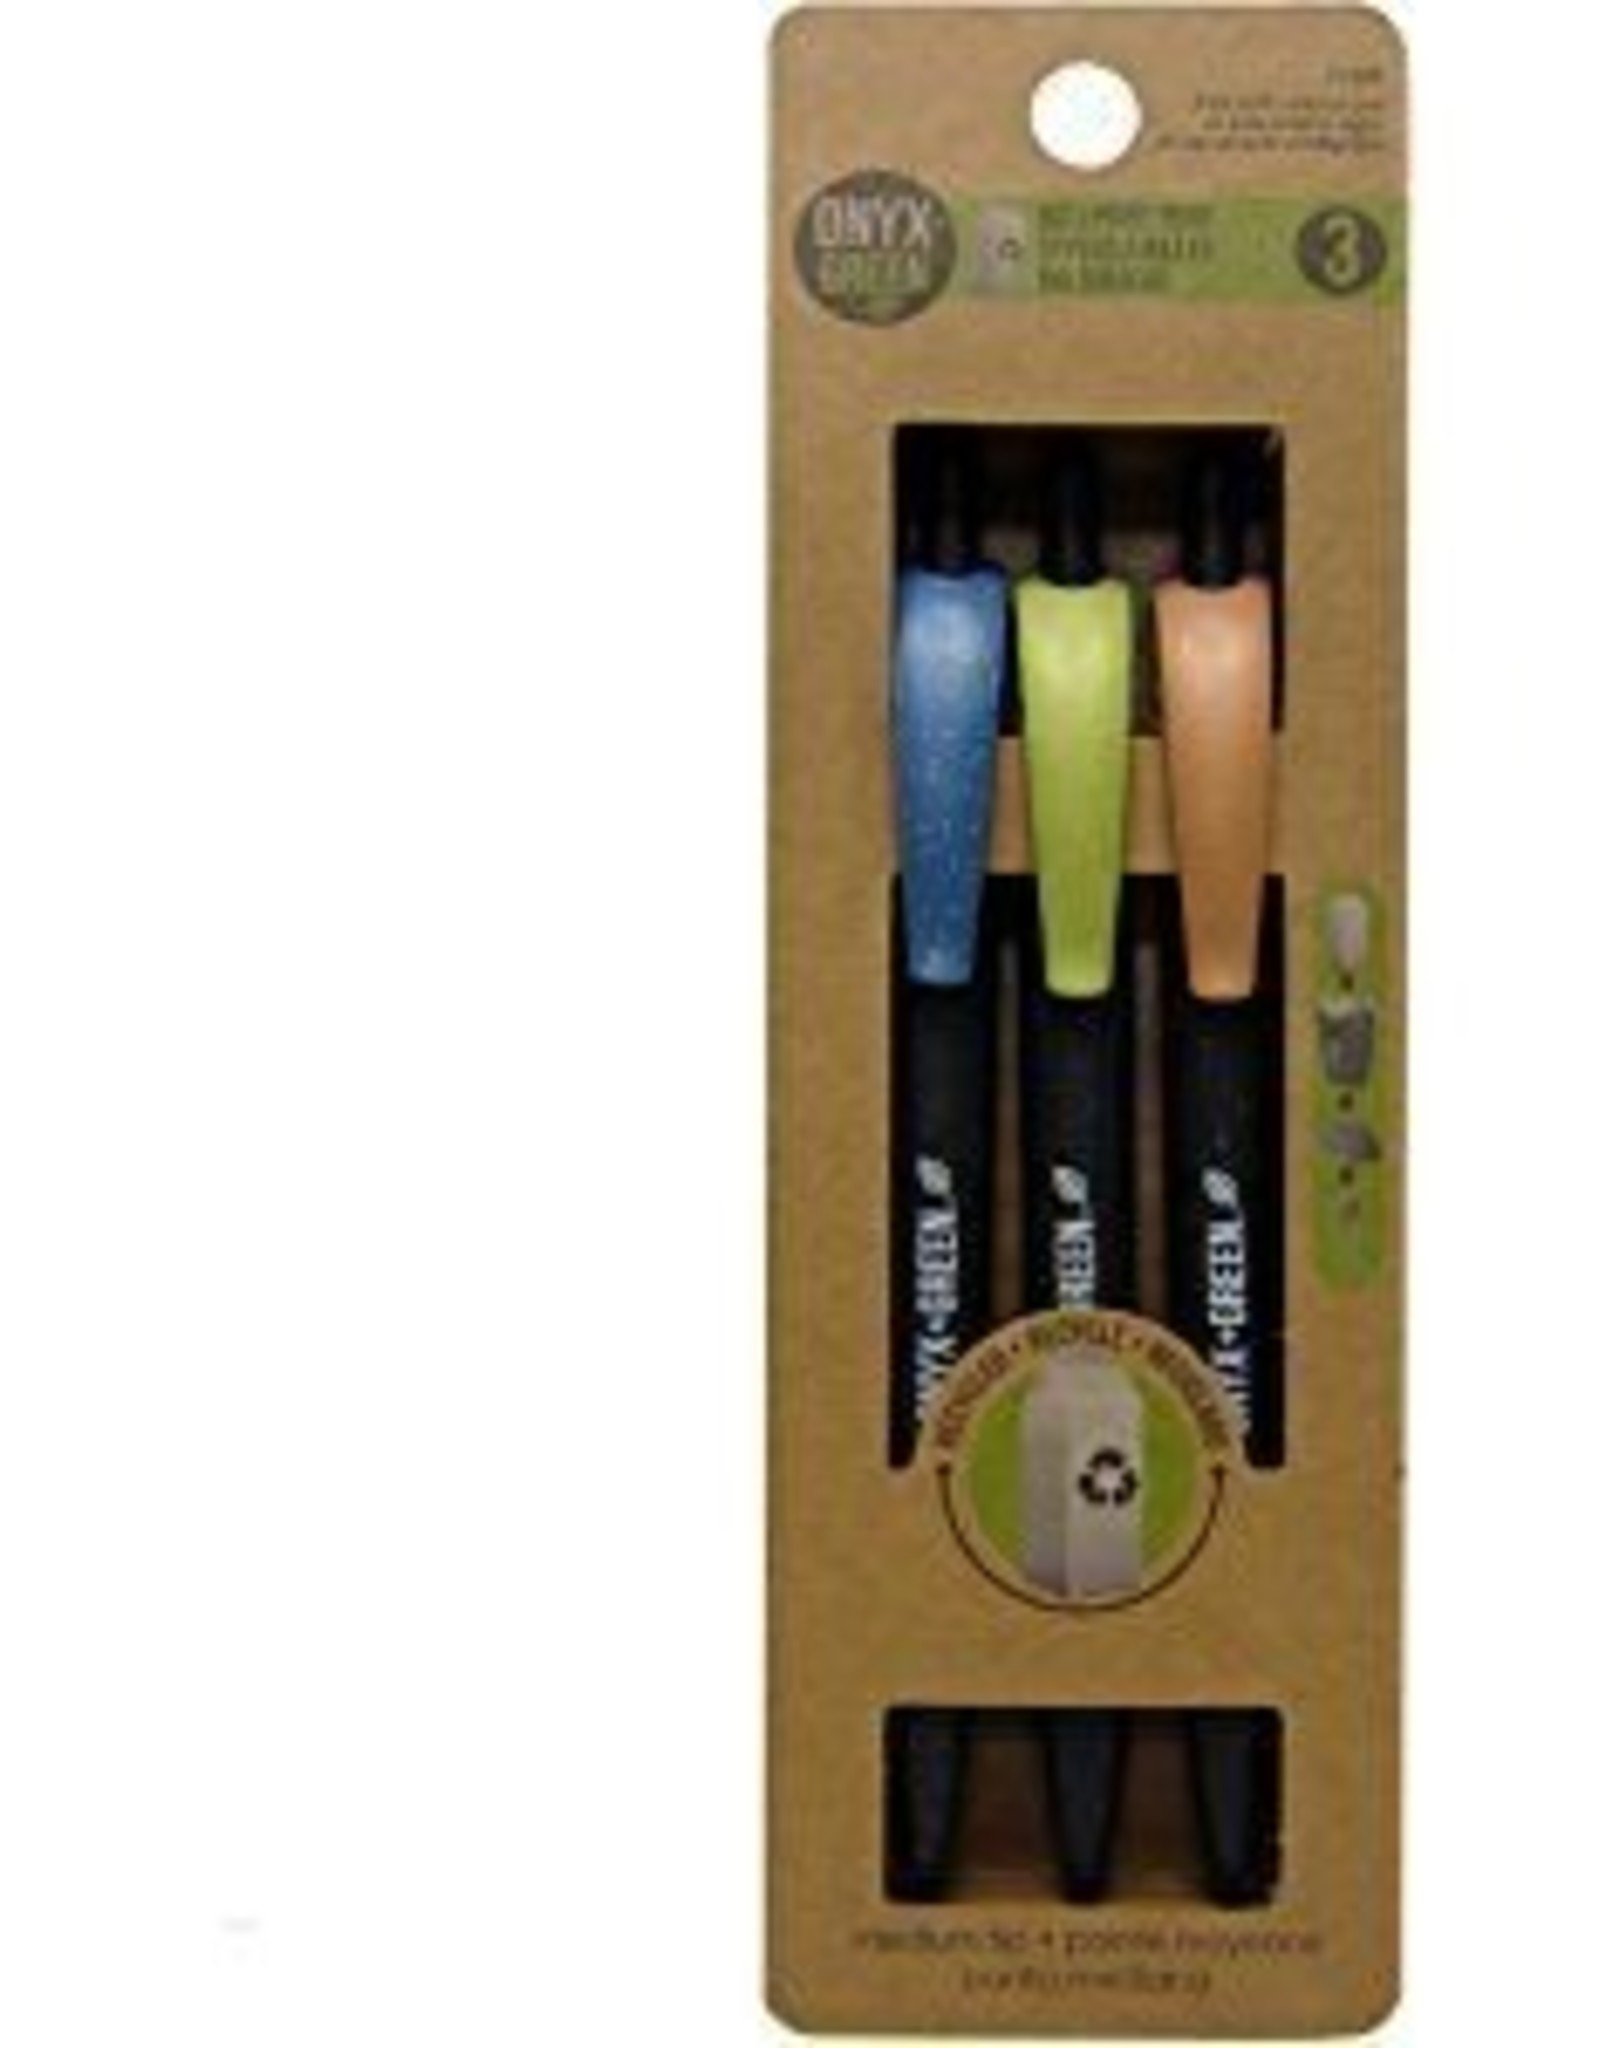 ONXG Onyx Green Pen Retractable Ballpoint (3)